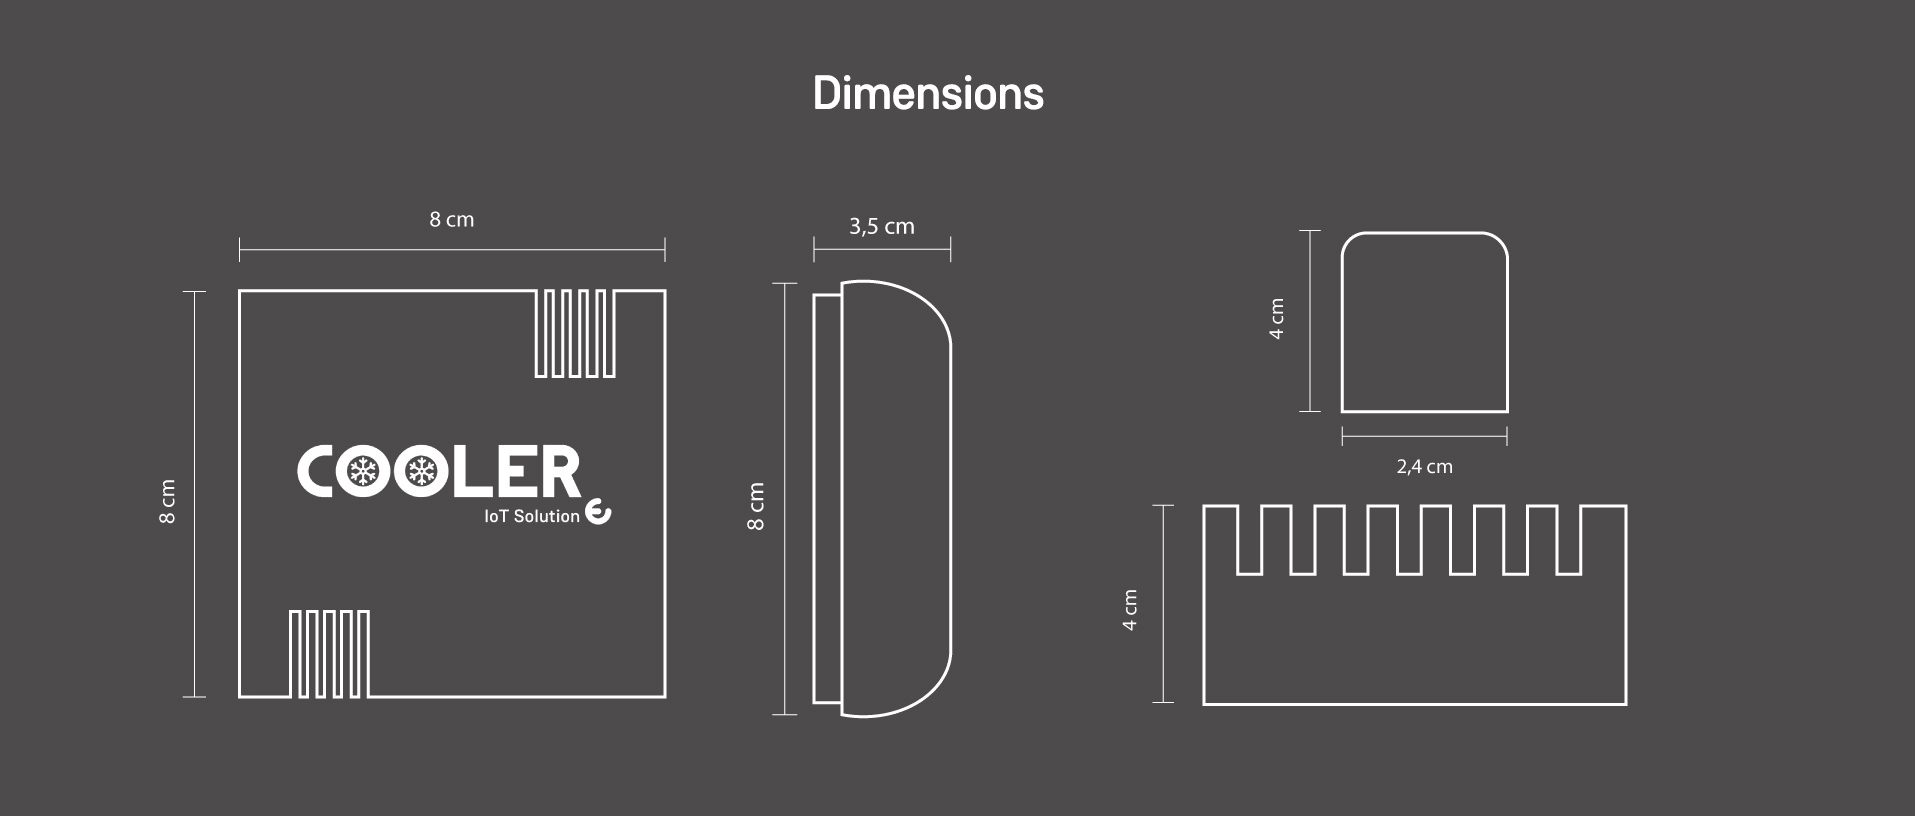 Dimensions Cooler devices